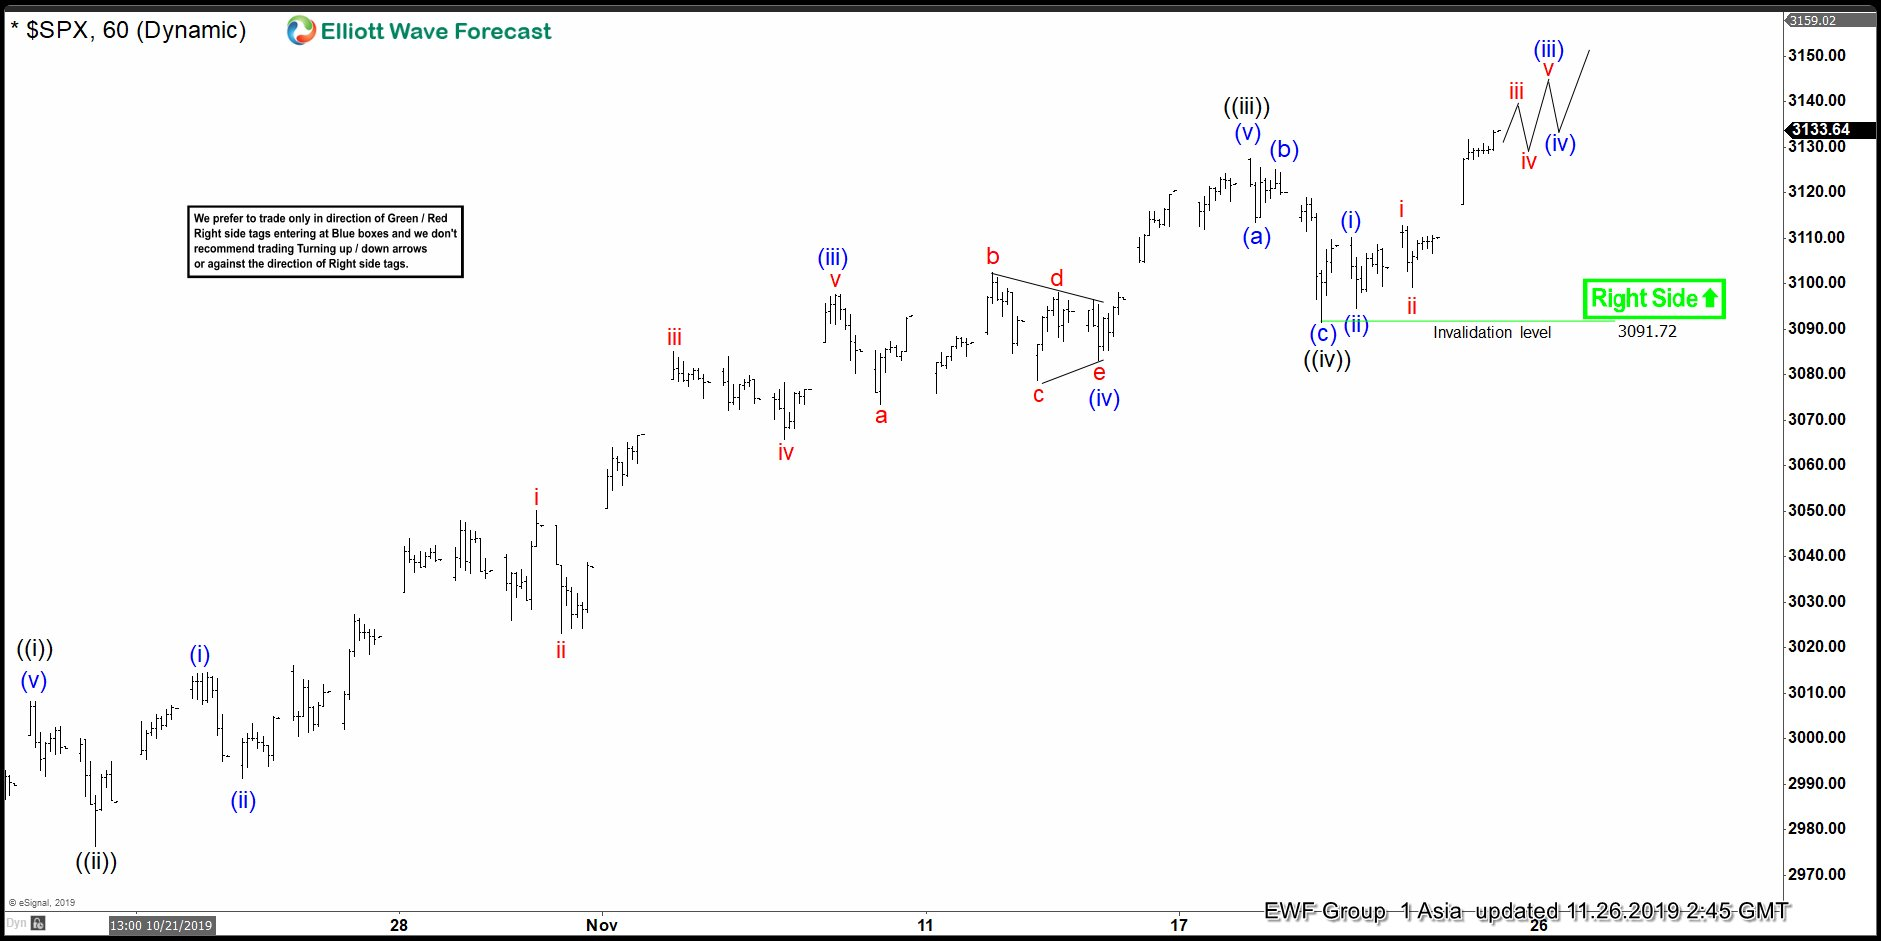 Elliott Wave View: Bullish Sequence Suggests Supported SPX